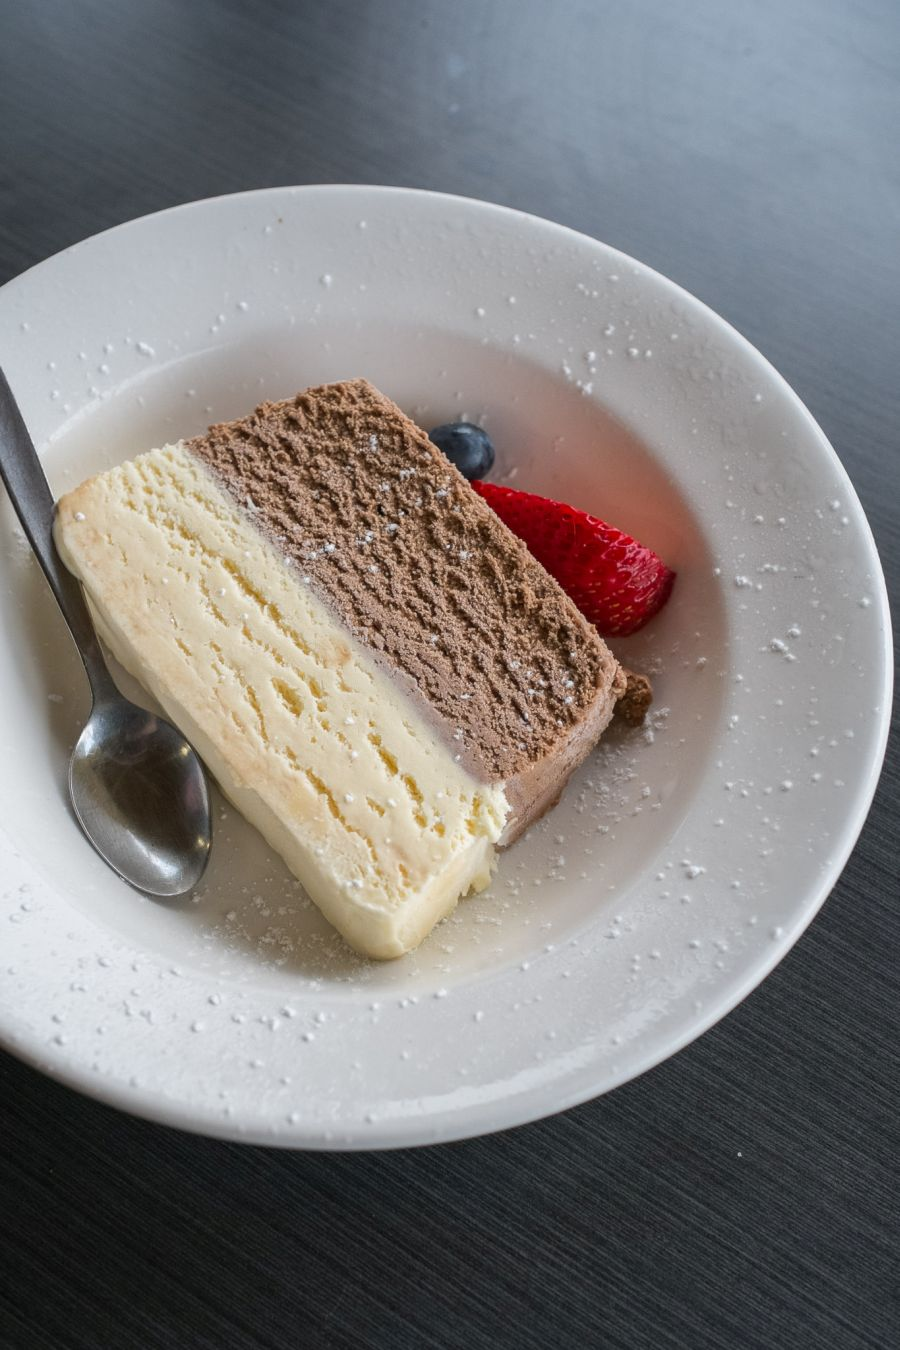 White and dark chocolate ice cream terrine (AU$7)